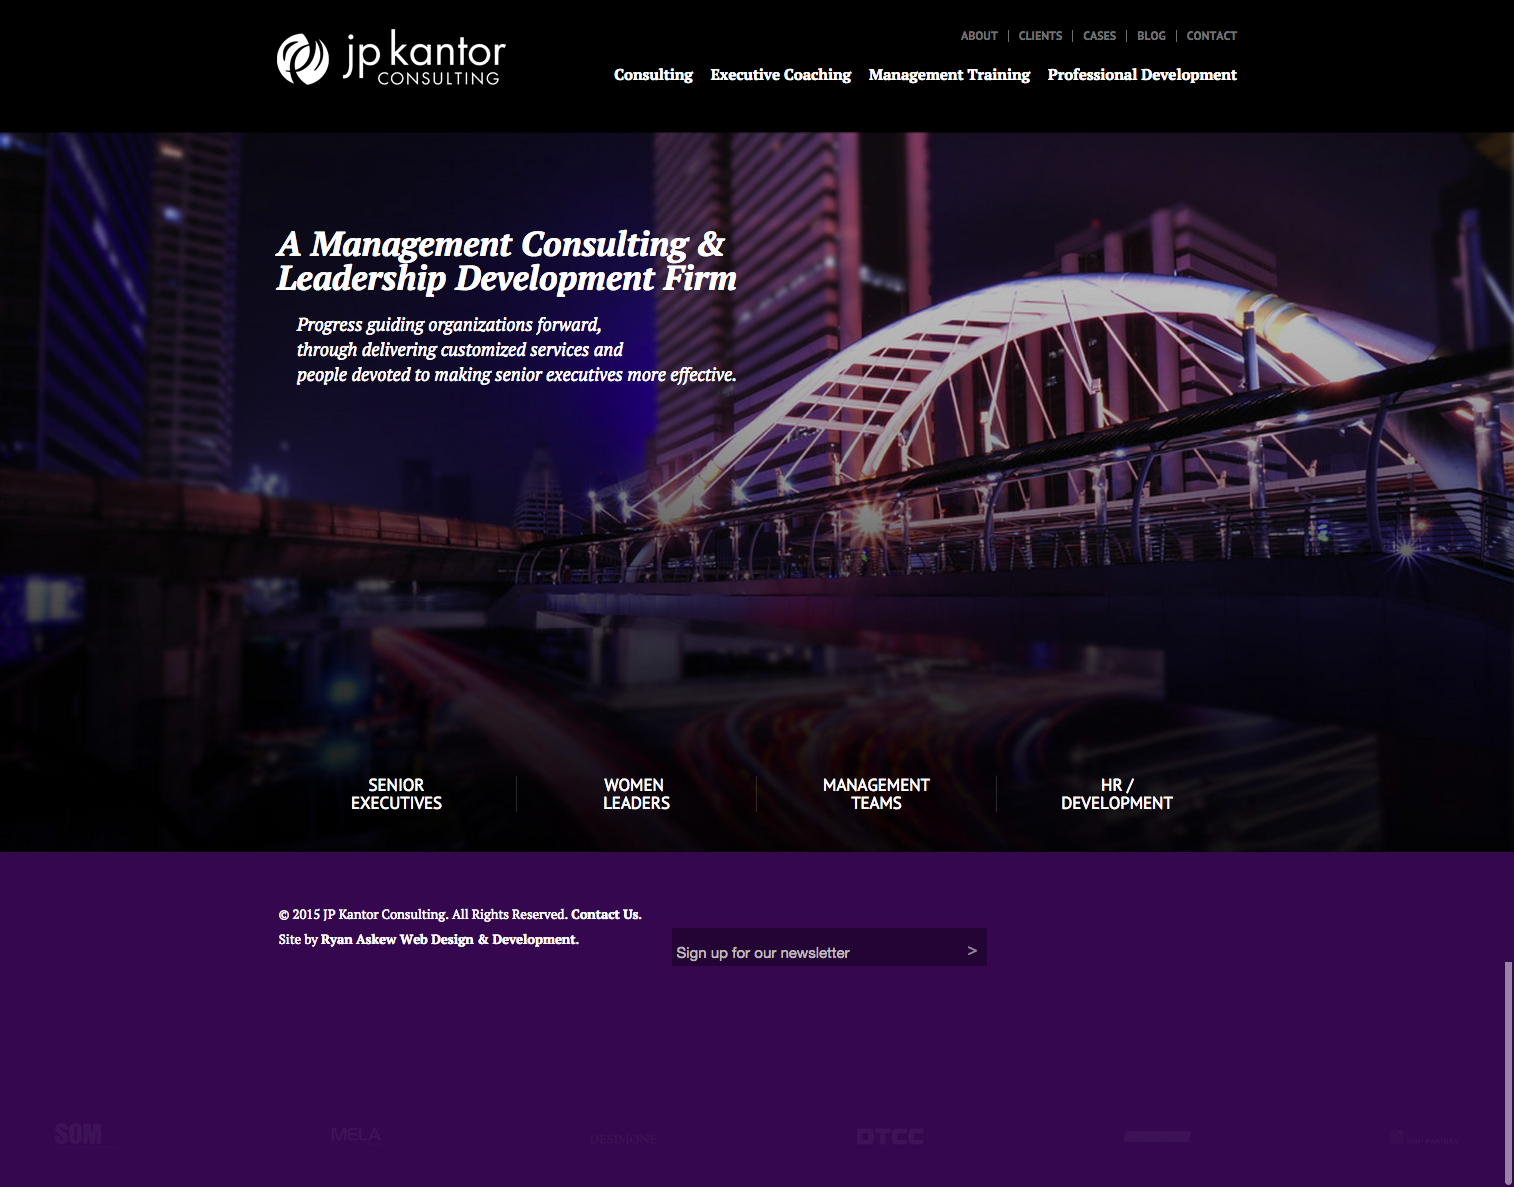 JP Kantor Consulting Homepage